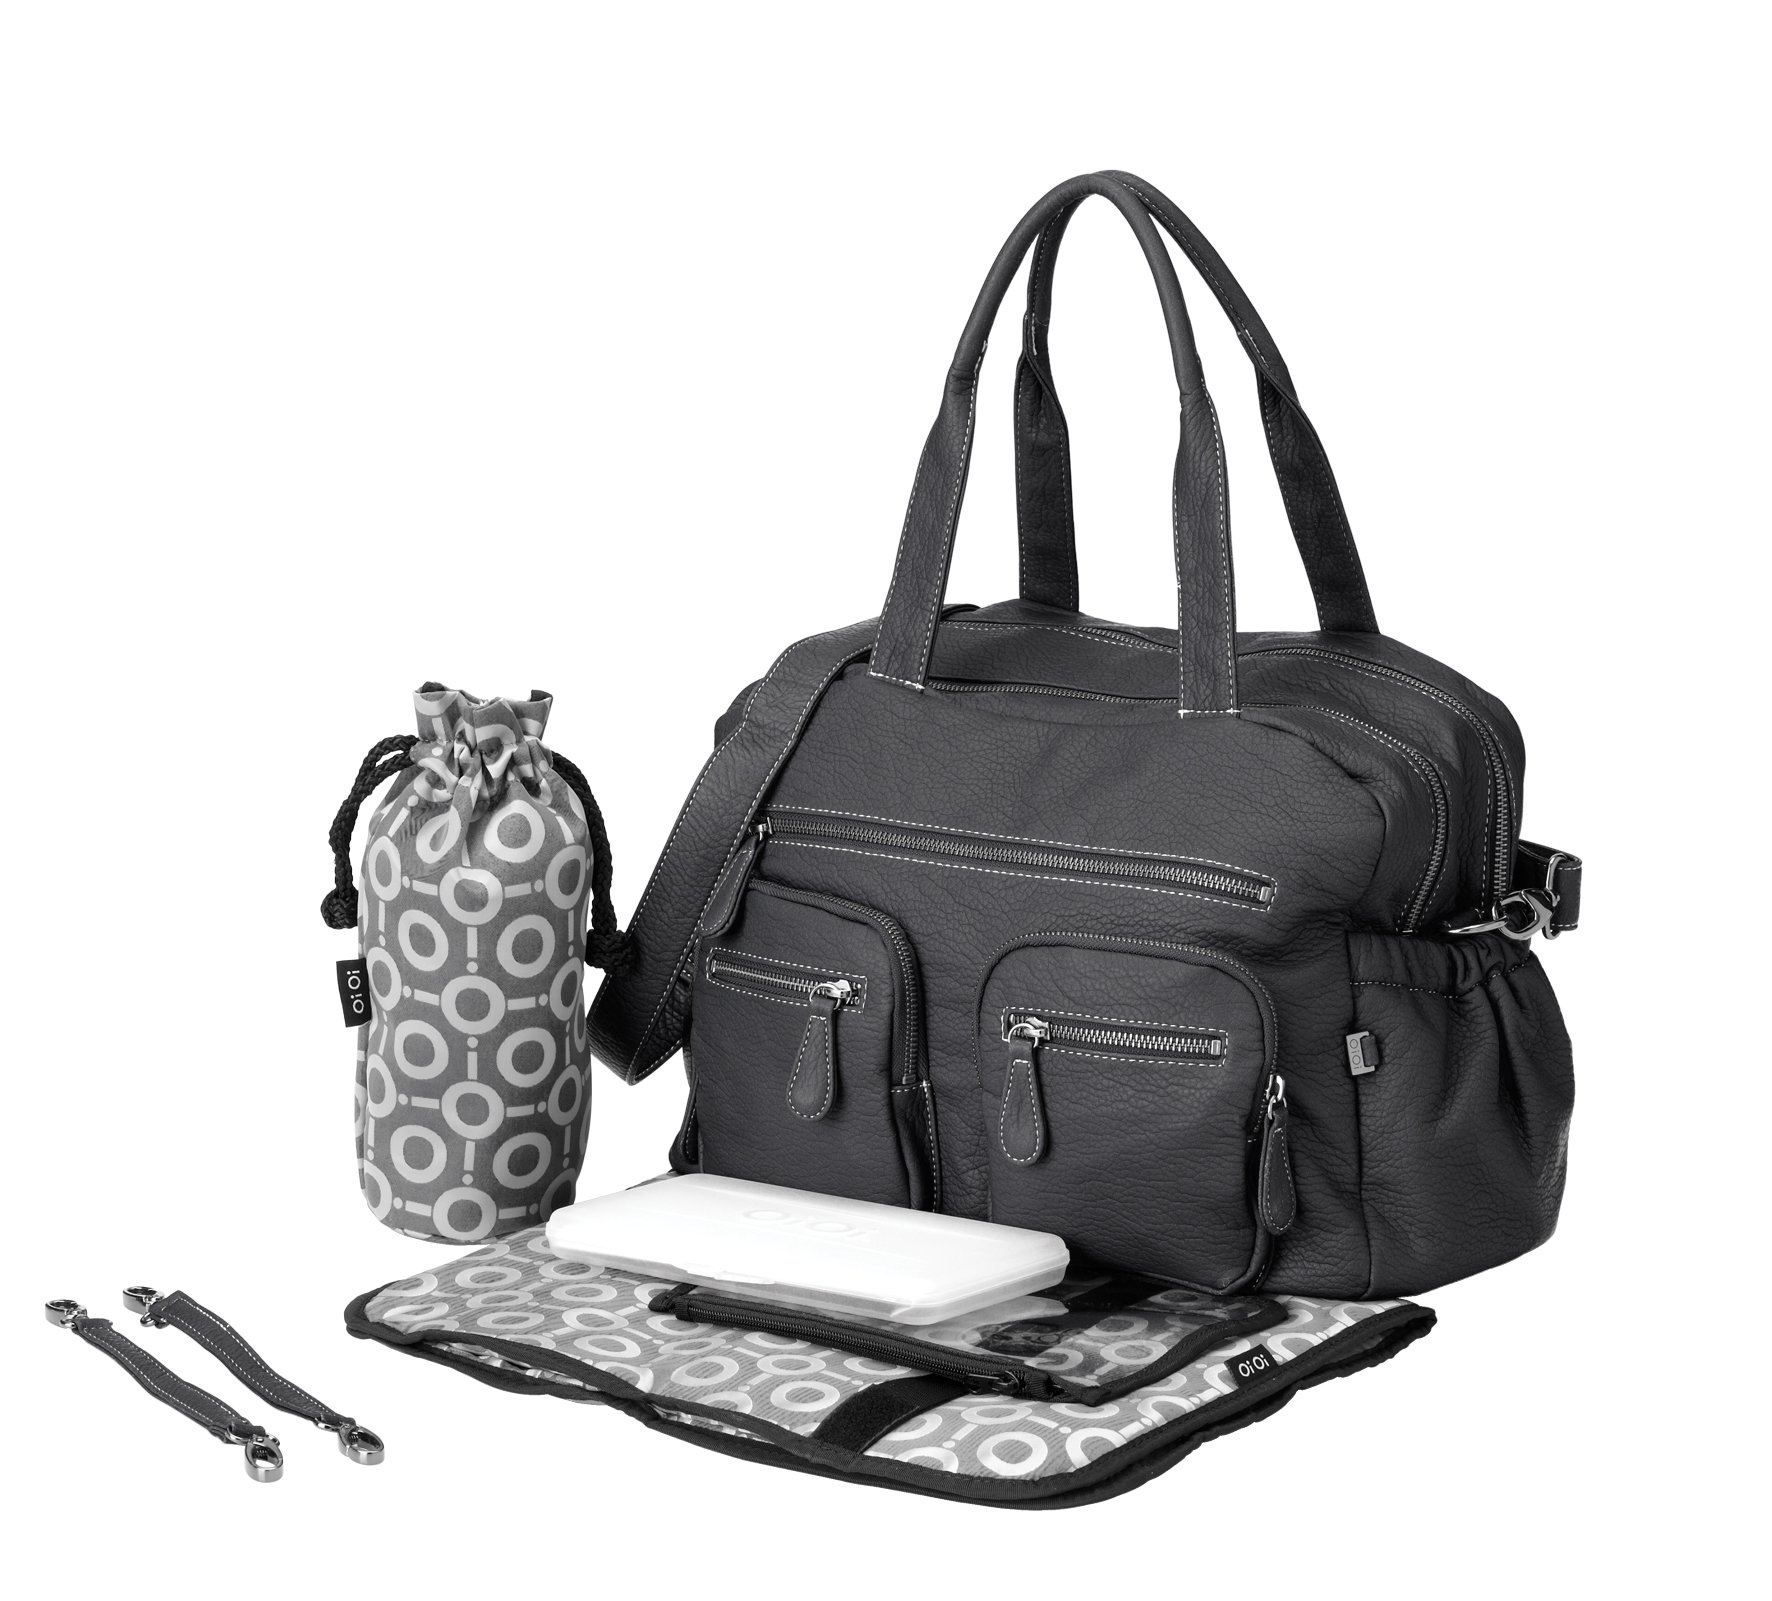 OiOi Faux Buffalo Carryall Diaper Bag, Charcoal by OiOi